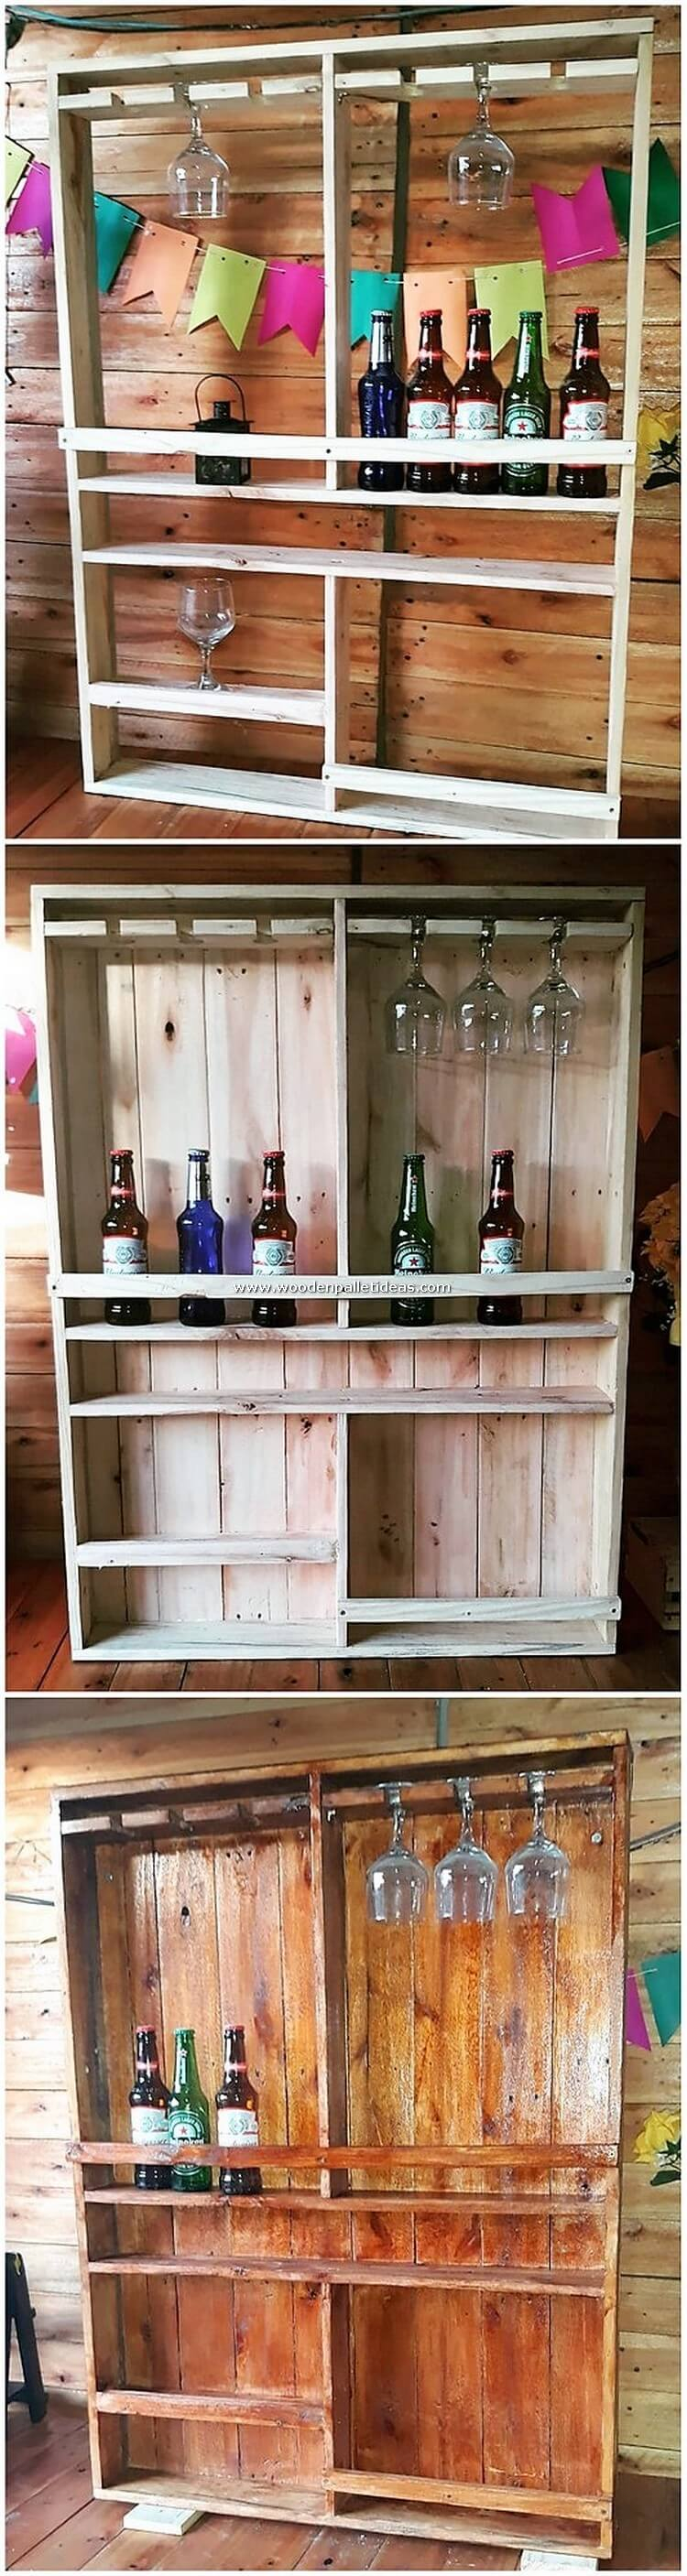 DIY-Pallet-Wine-Rack